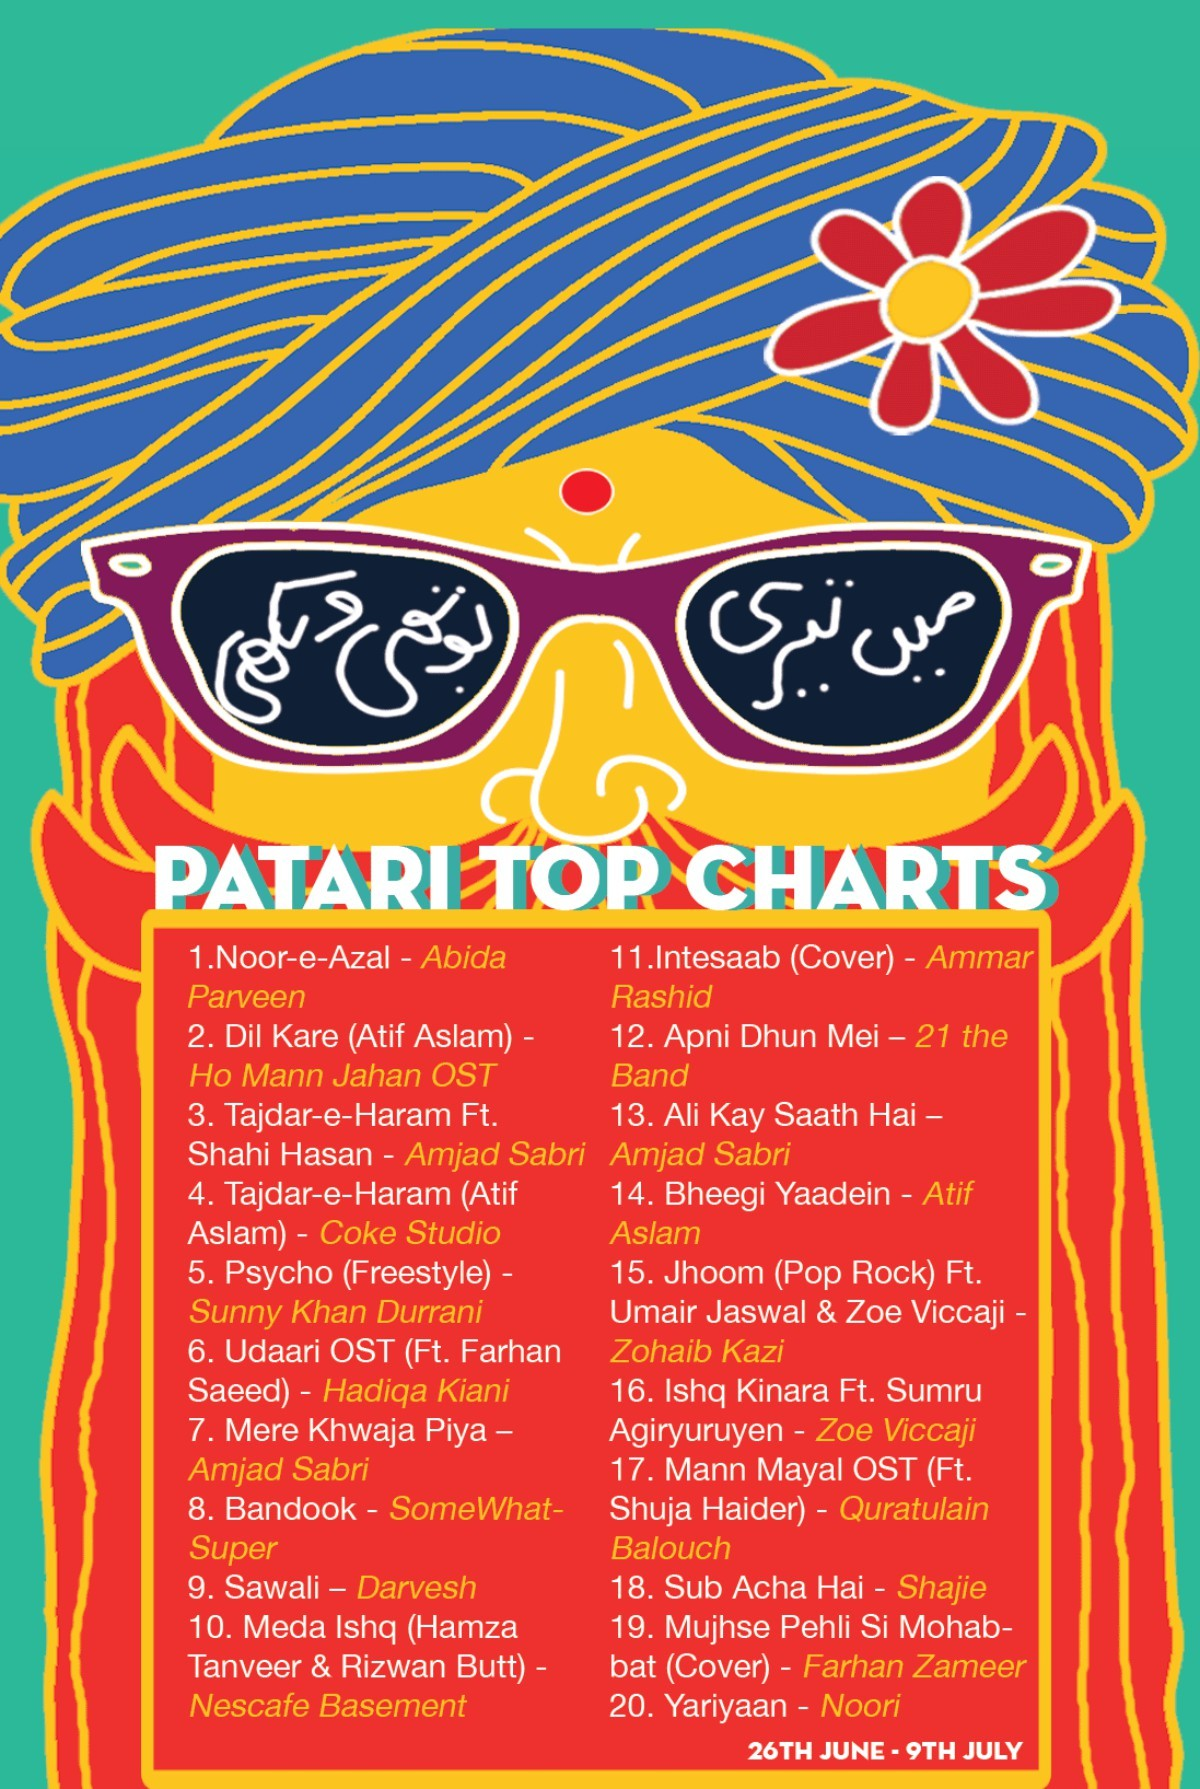 The charts for 9th July